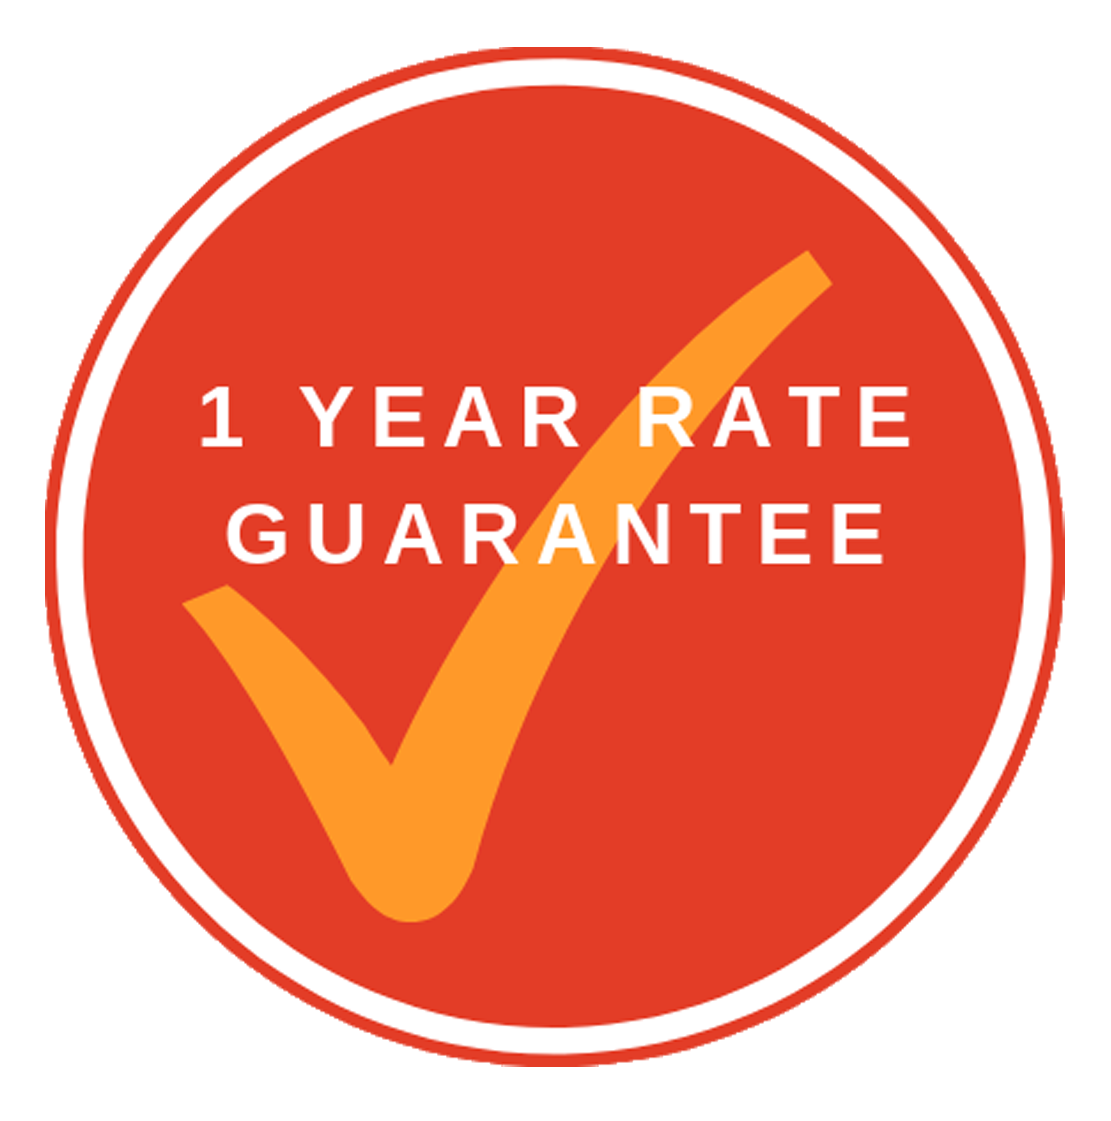 Premier Storage Issaquah 1 Year Rate Guarantee!